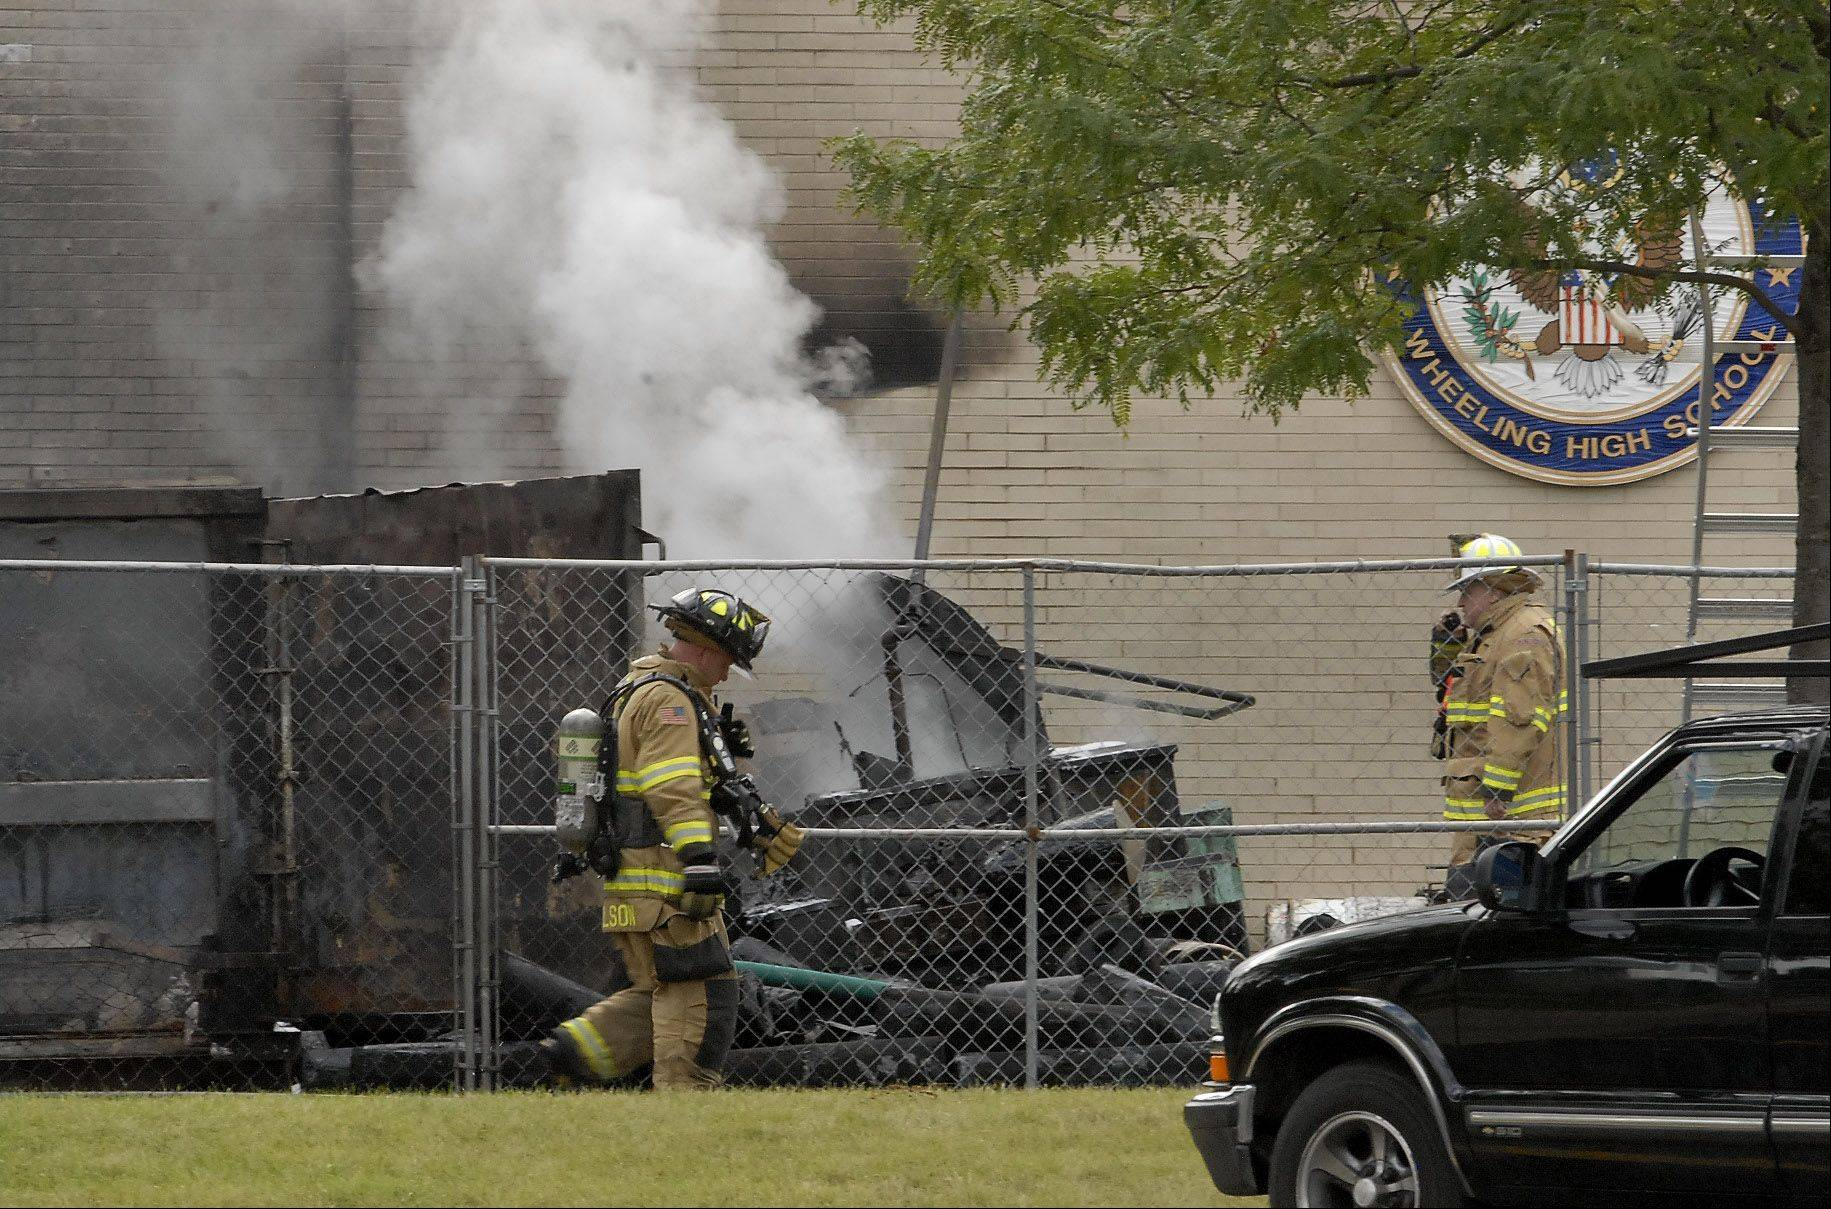 The fire at Wheeling High School never got inside the building, officials said.